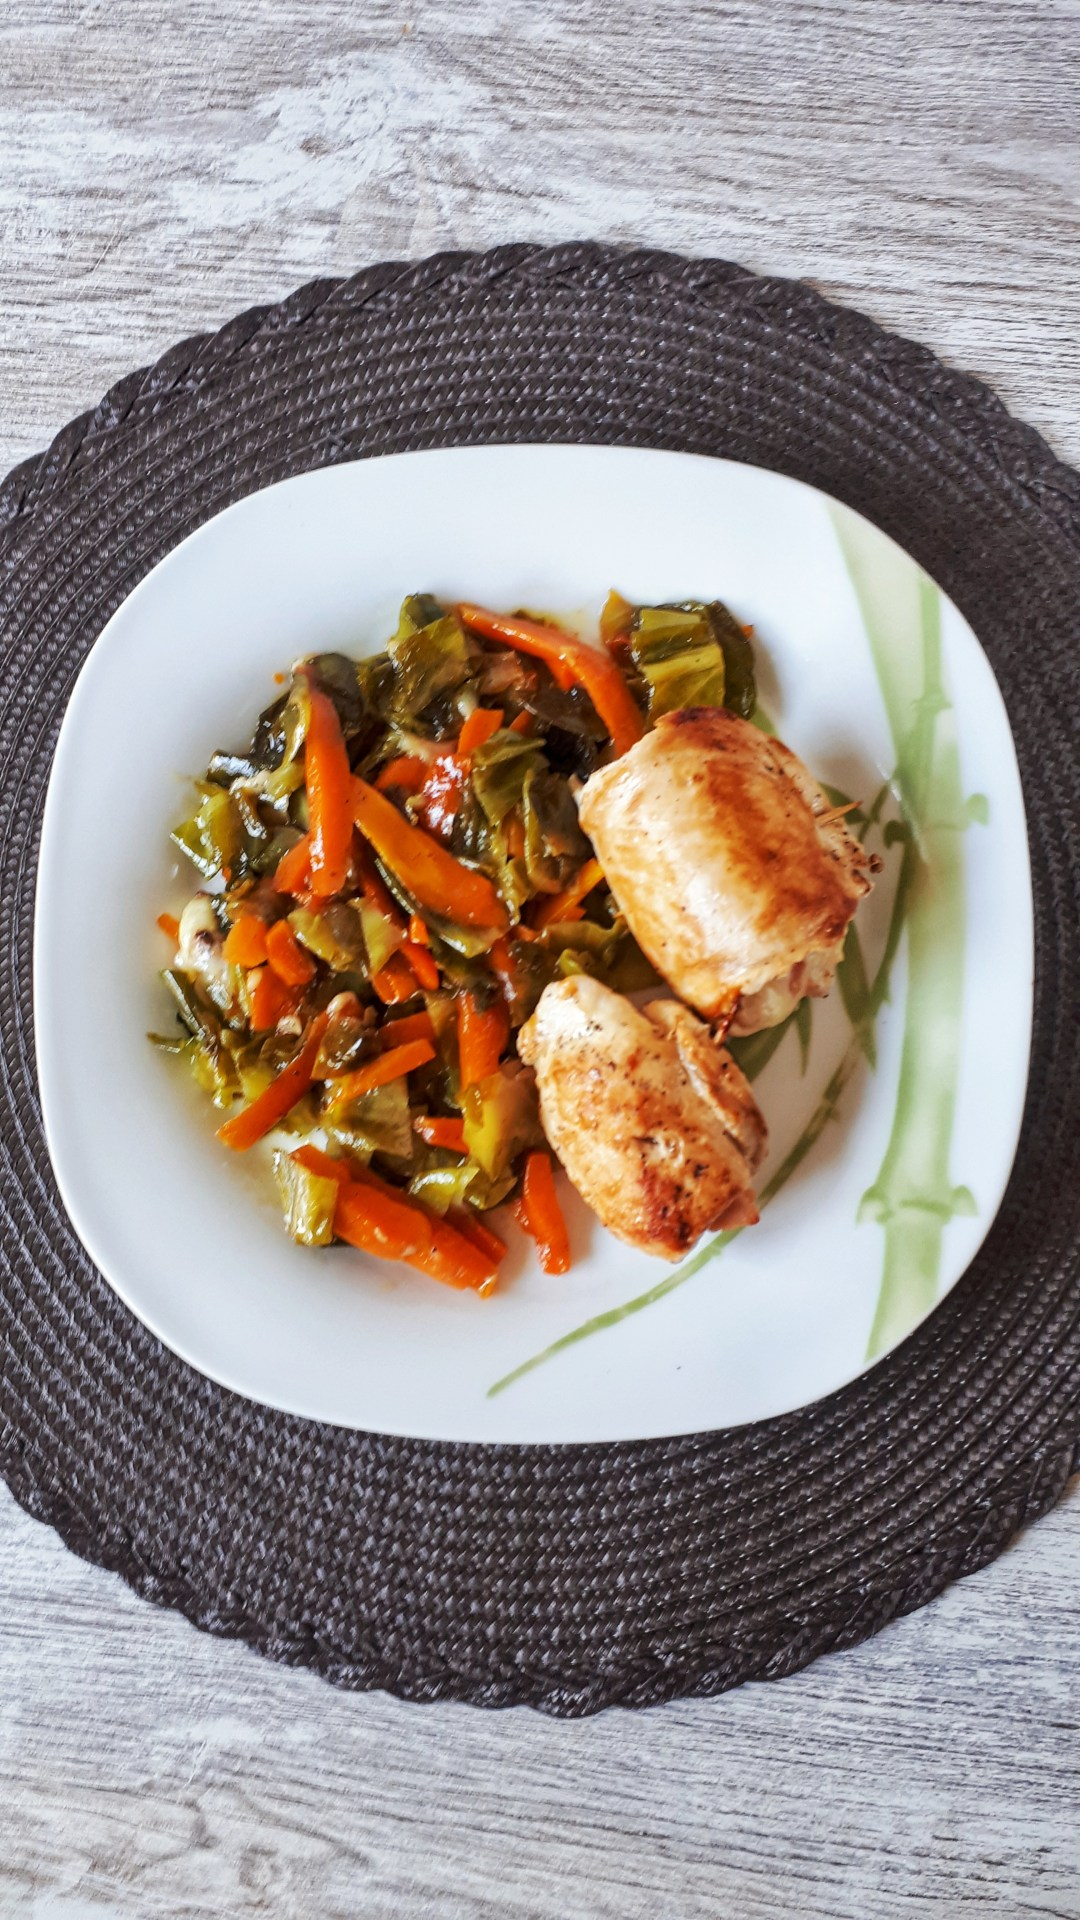 These chicken breasts stuffed with cheese and turkey ham are a low carb and healthy recipe, perfect for your weeknight dinner ou for a dinner with friends if you want to impress them. T